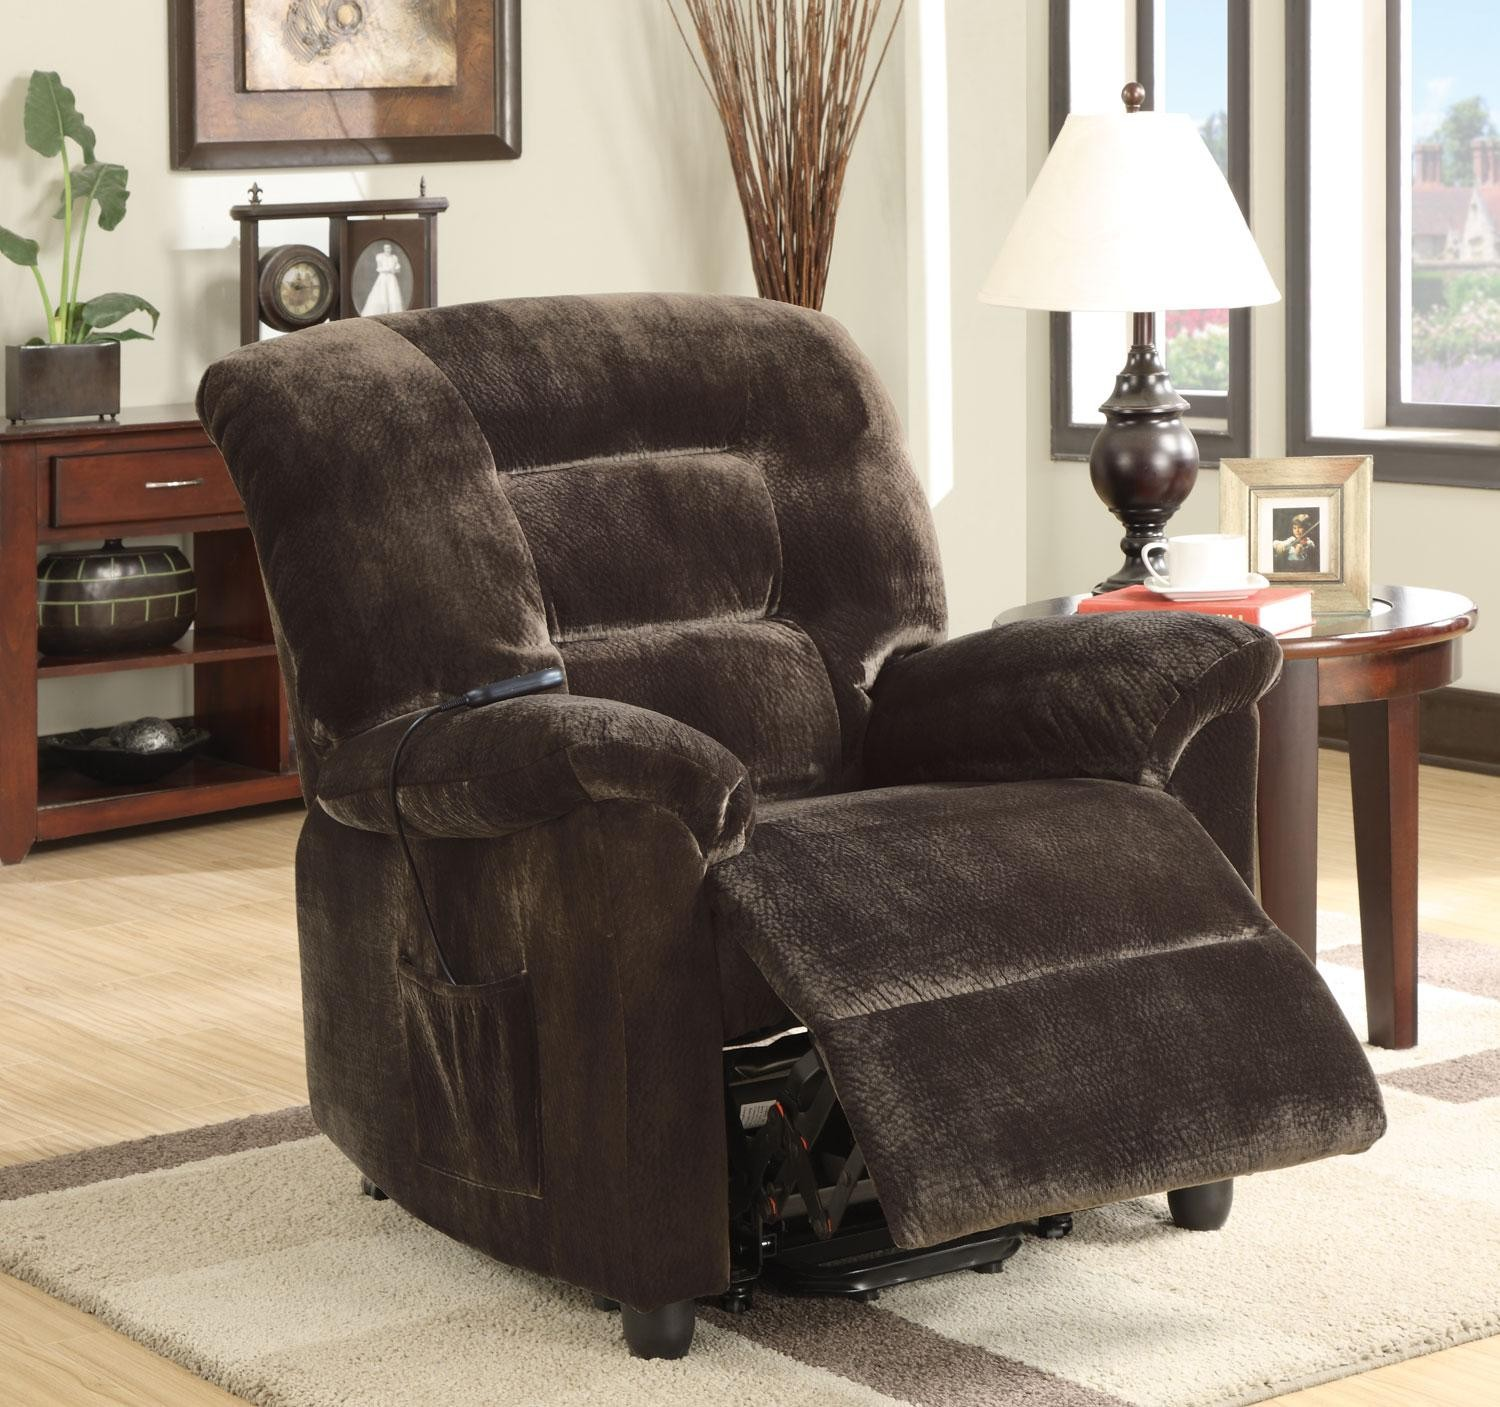 black fabric power lift recliners on wooden floor with white carpet plus table with table standing lamp for living room decor ideas